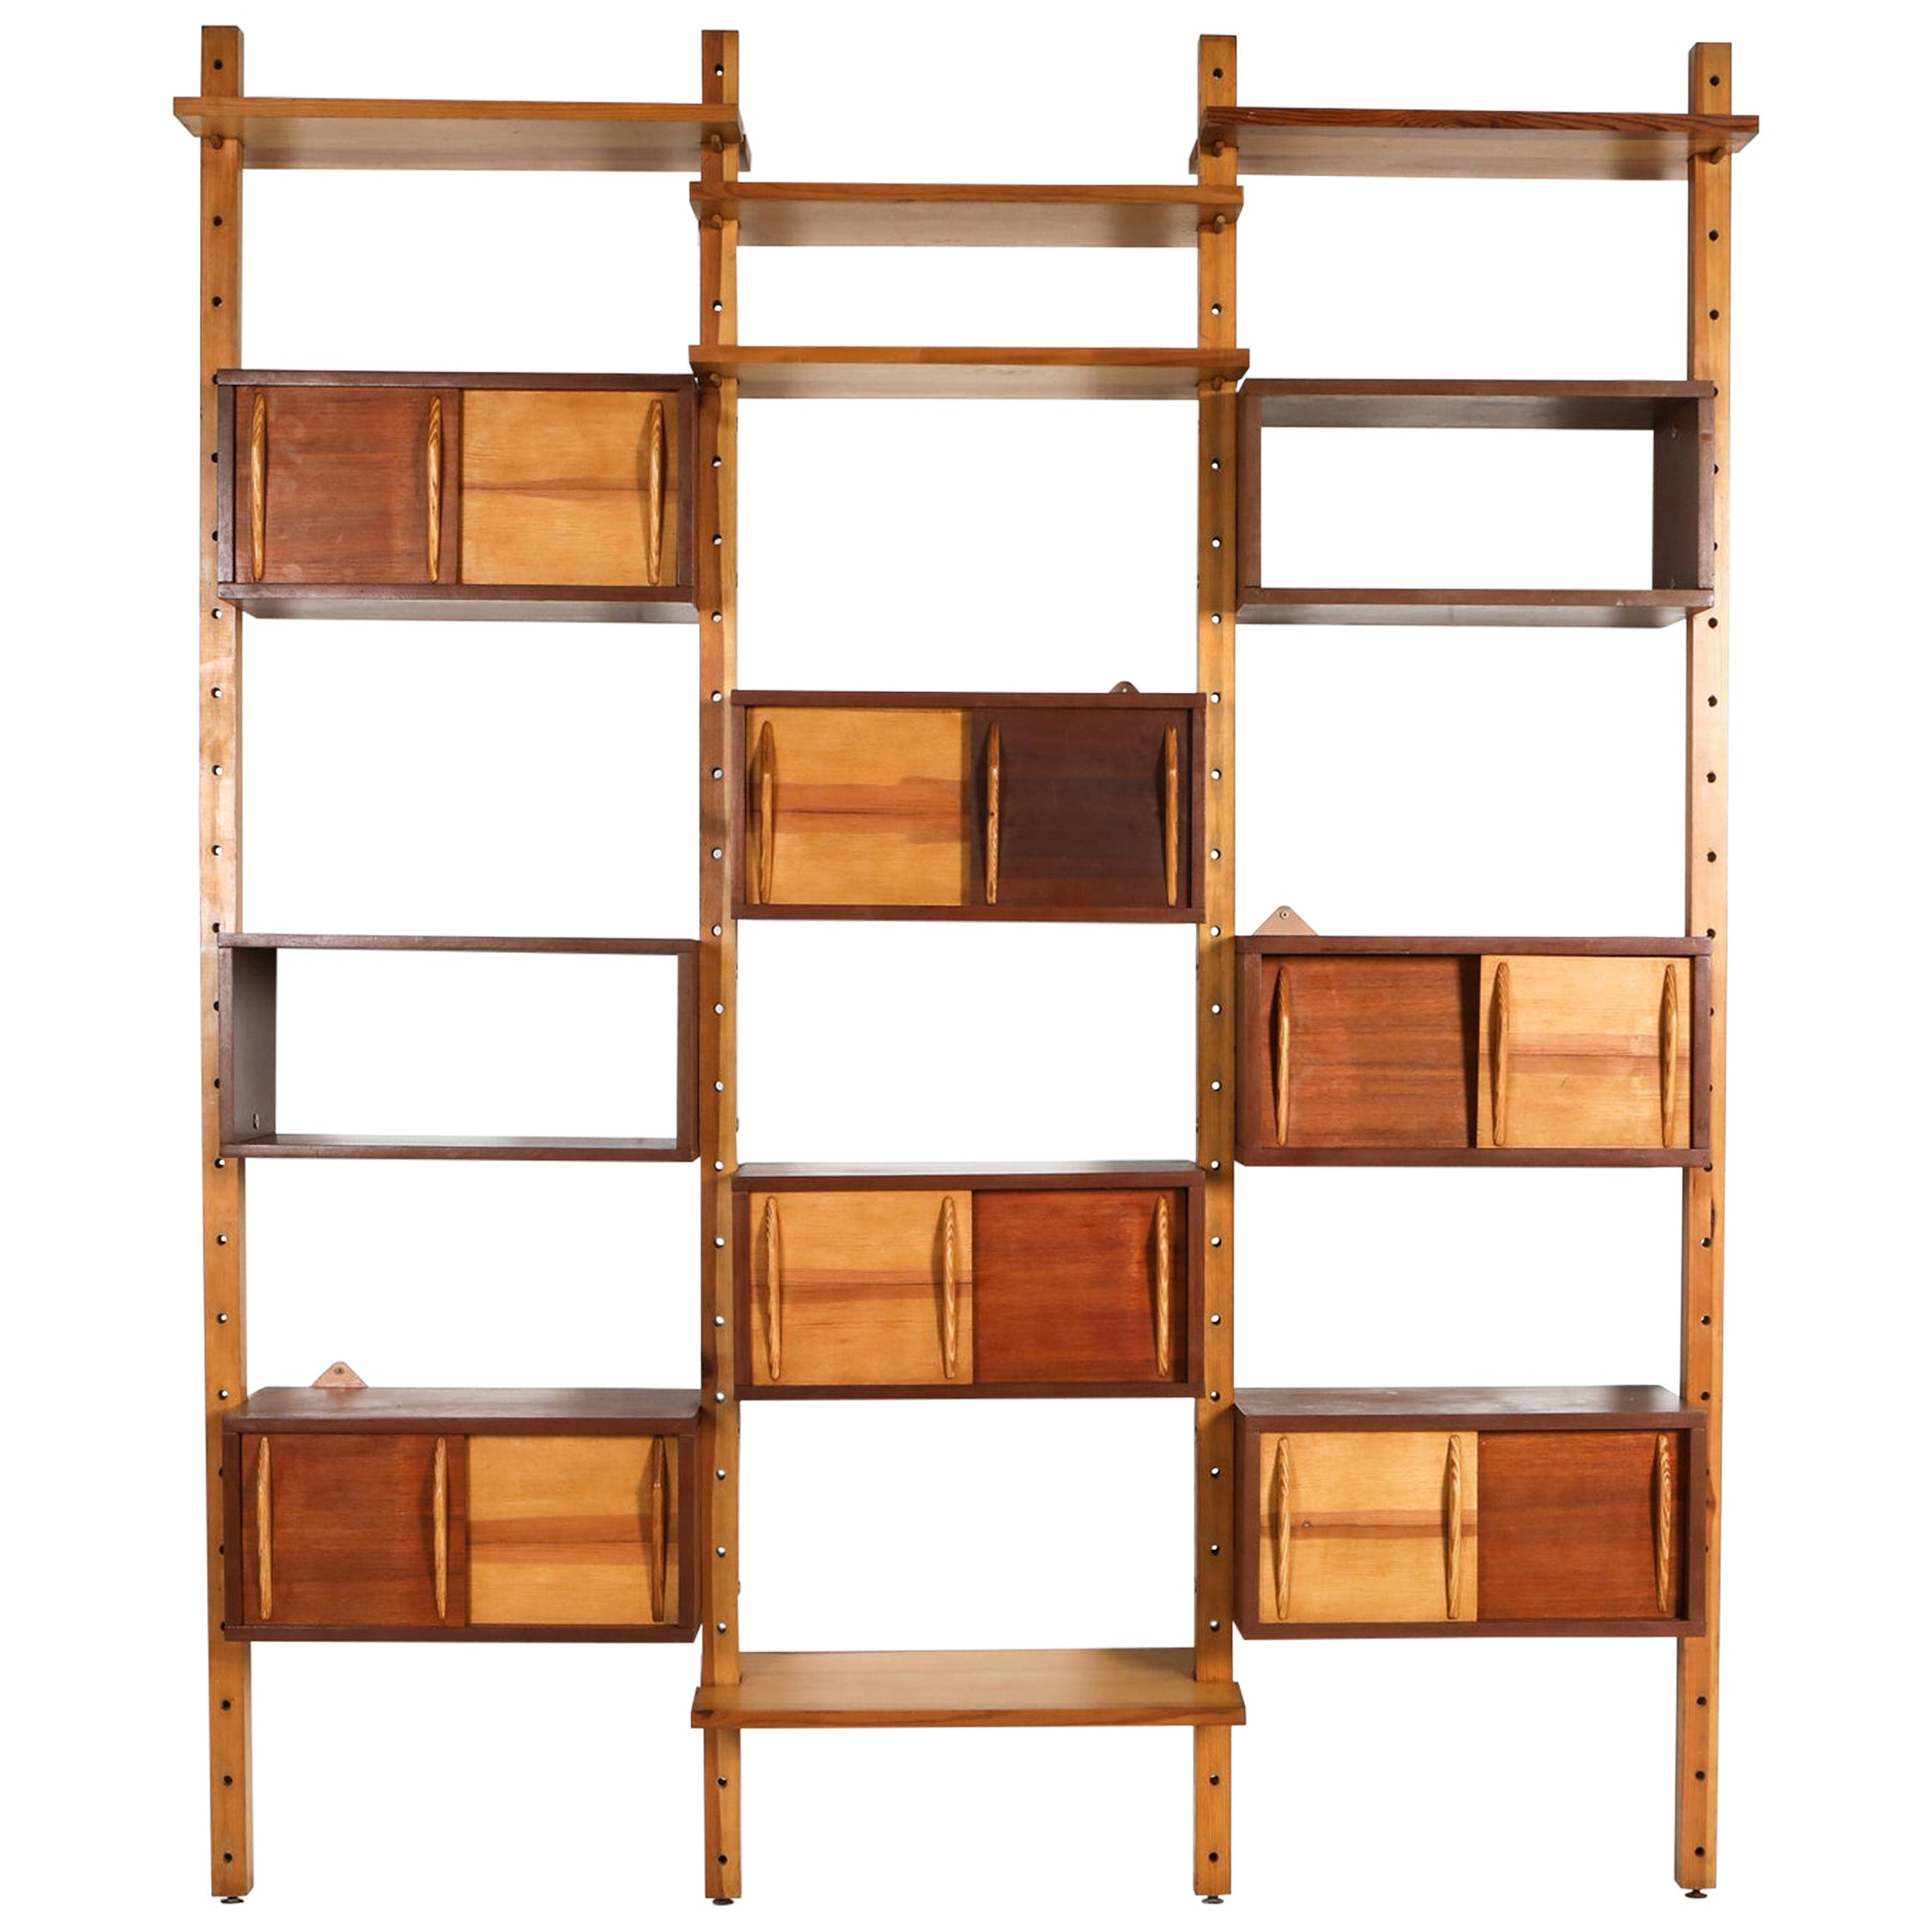 Mid-Century Modern Shelve Unit in the Style of Perriand and Le Corbusier